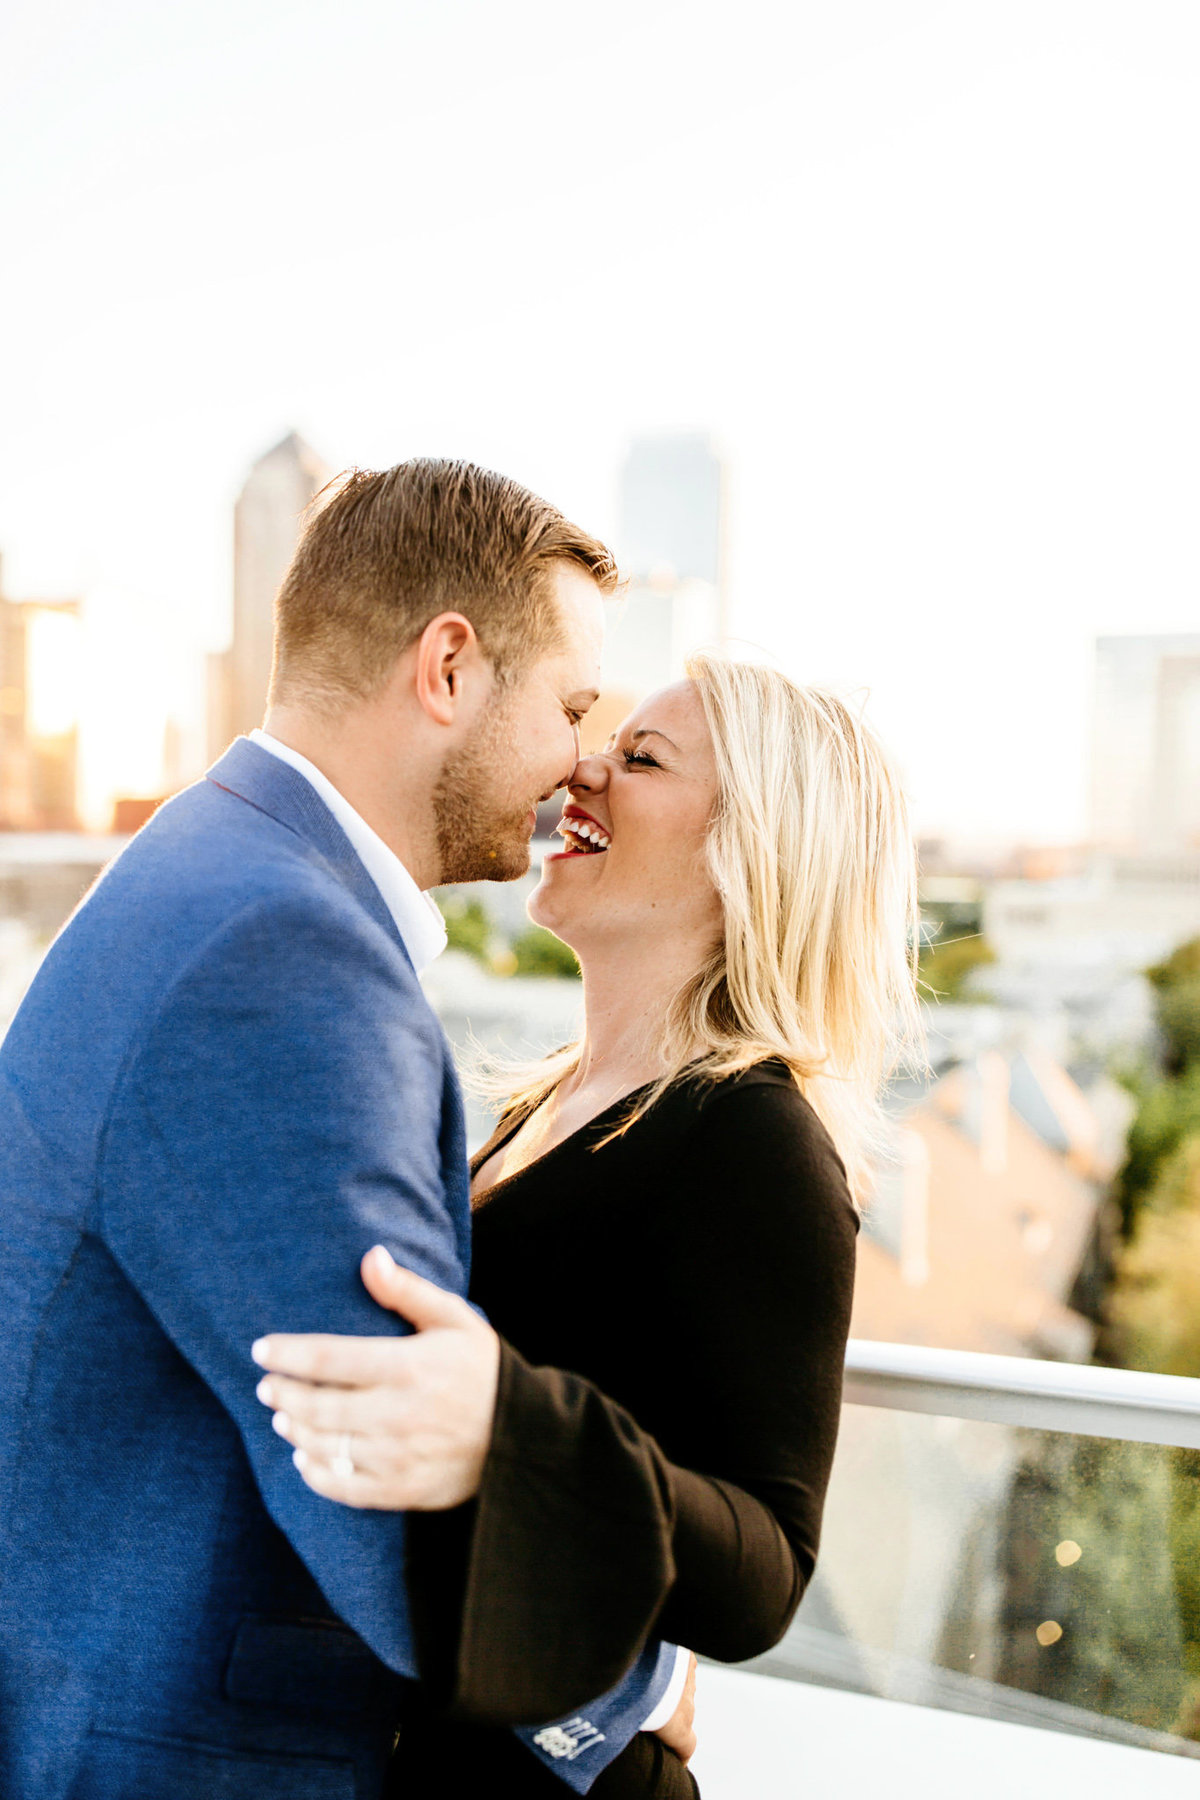 Eric & Megan - Downtown Dallas Rooftop Proposal & Engagement Session-101